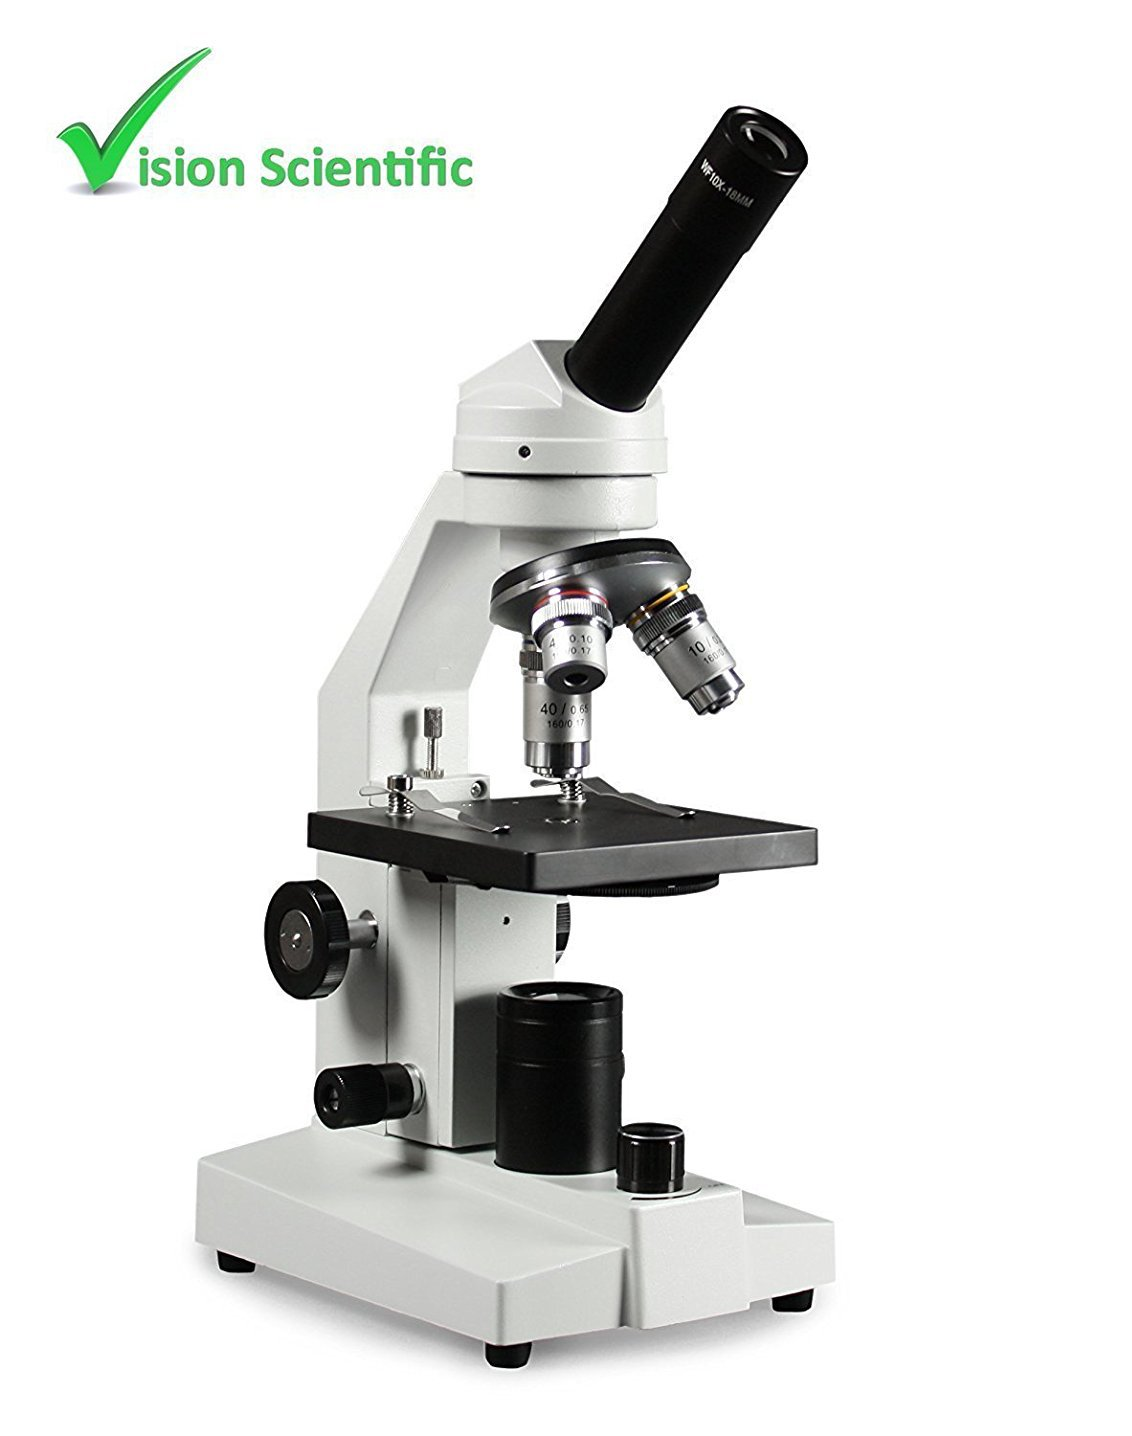 Vision Scientific VME0020-E2 Student LED Microscope, 10x WF and 20x WF Eyepiece, 40x-800x Magnification, LED Illumination with Light Intensity Control, Coarse and Fine Focus by Vision Scientific